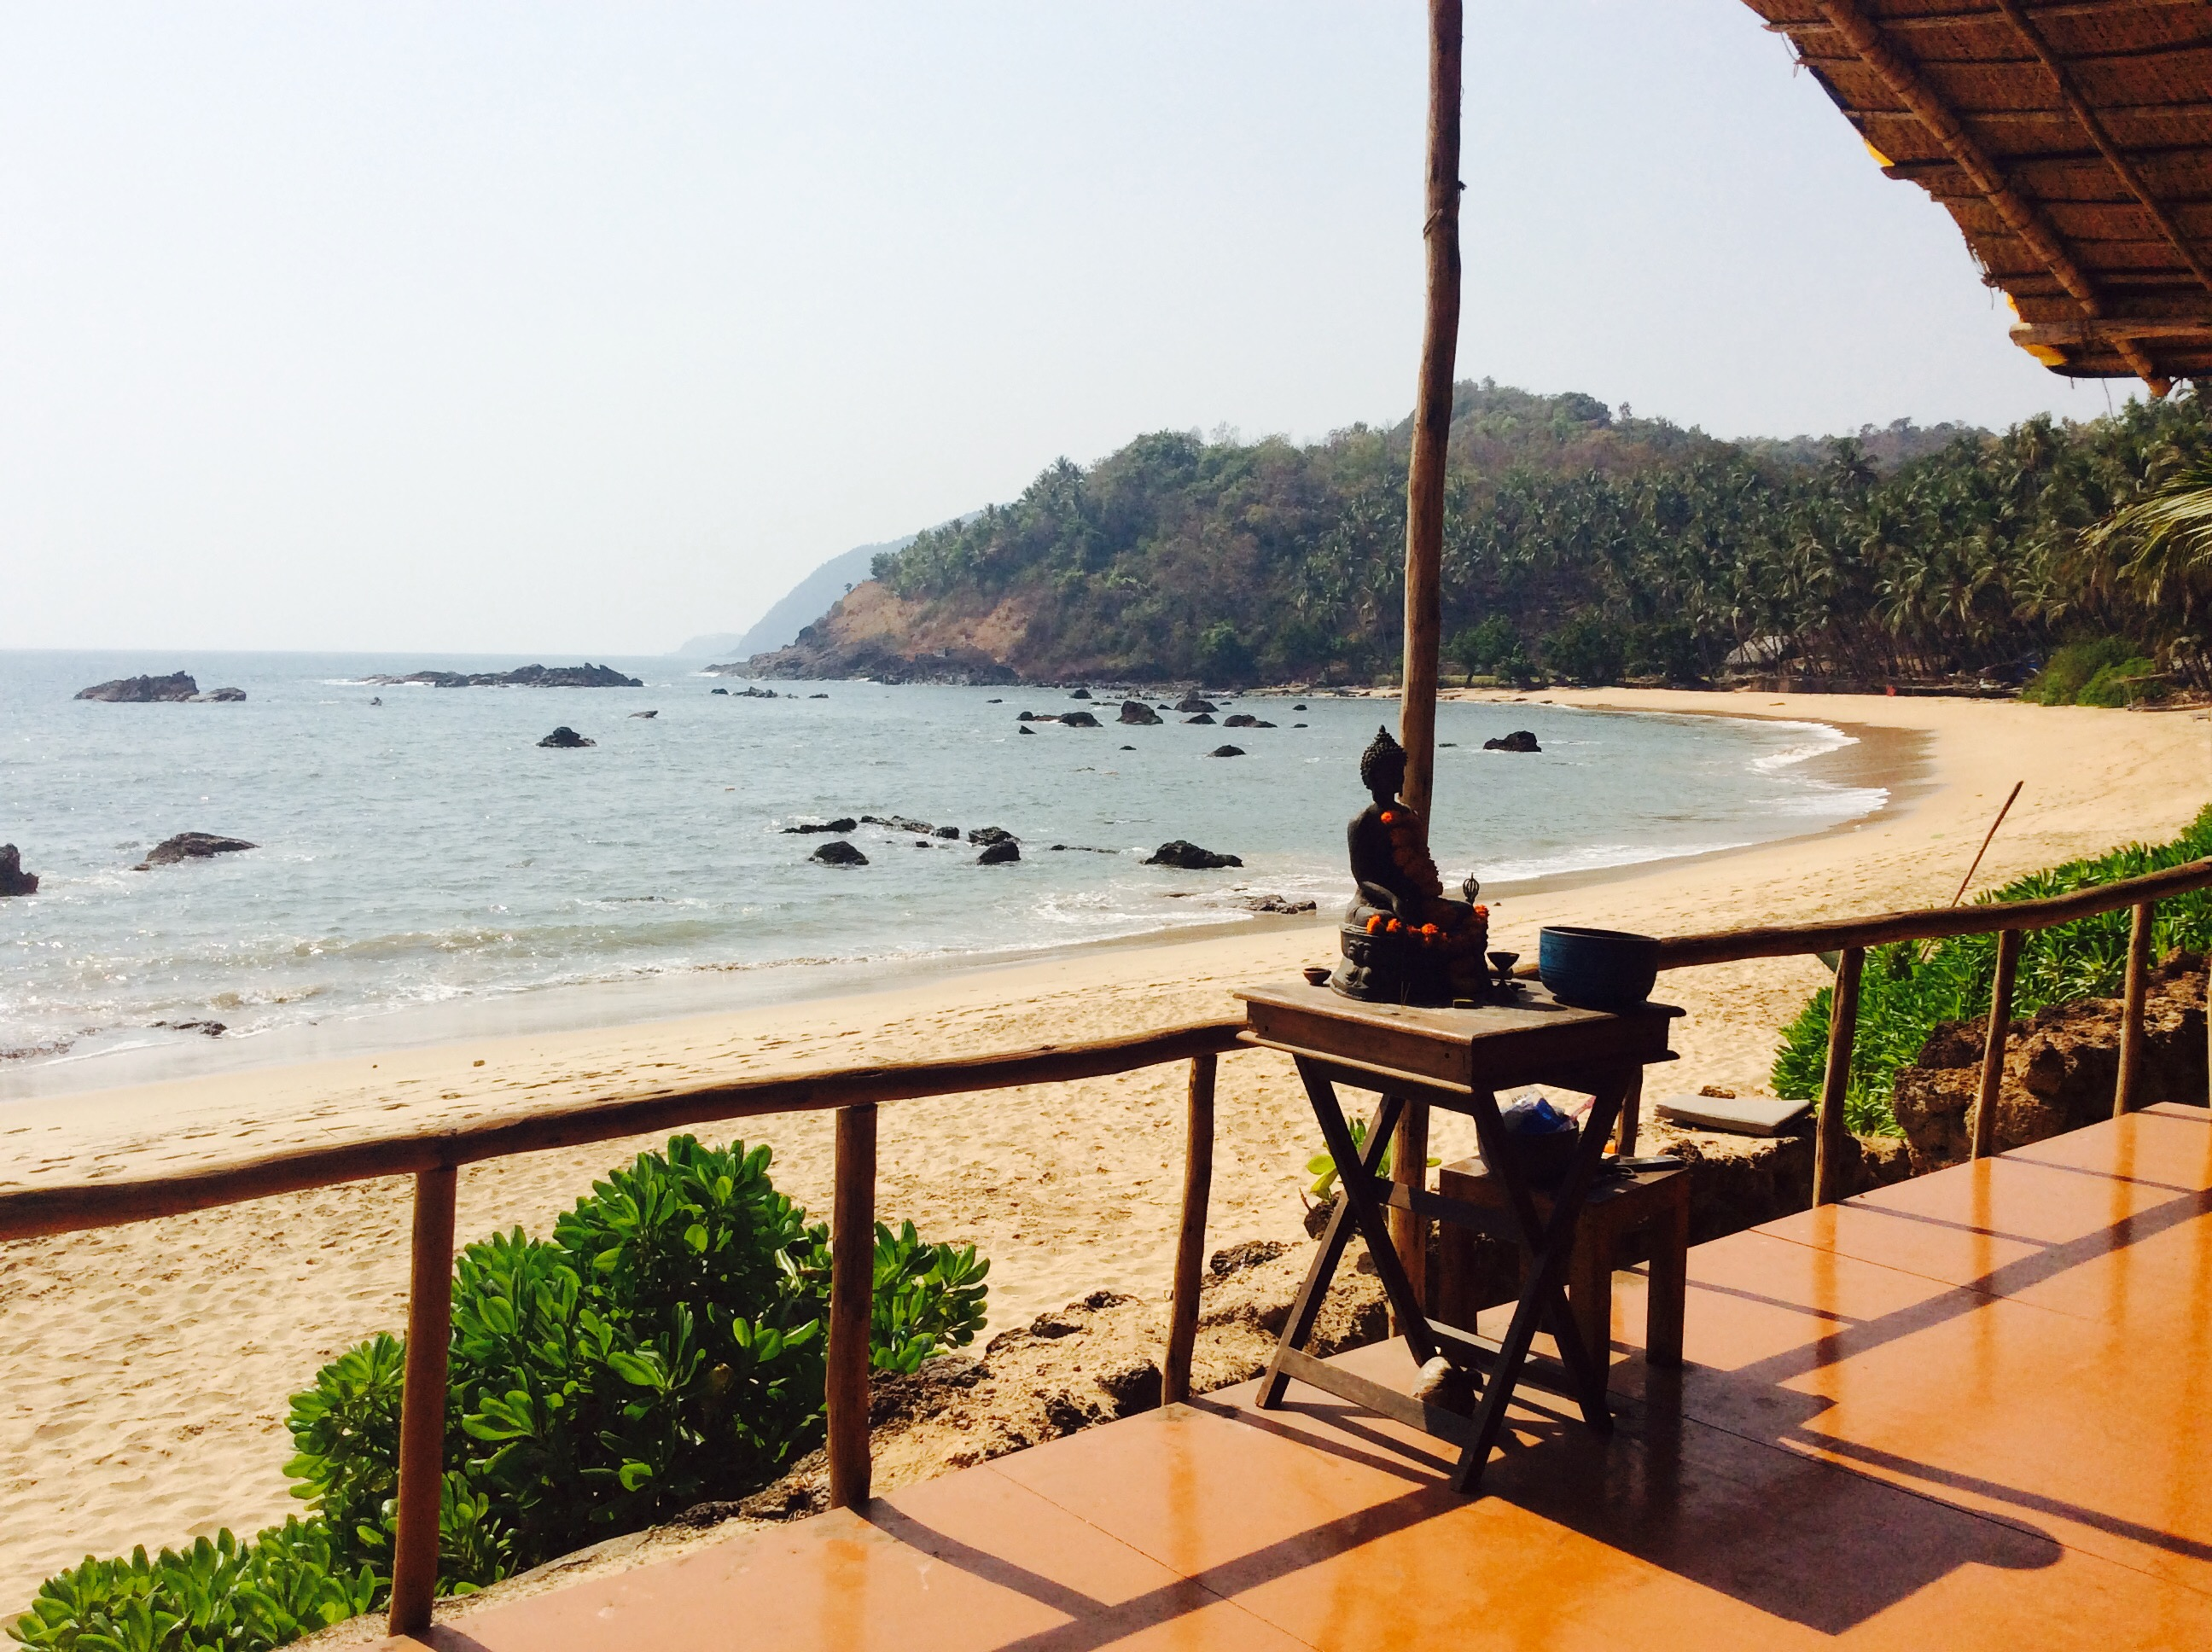 India: Goa, shala view New